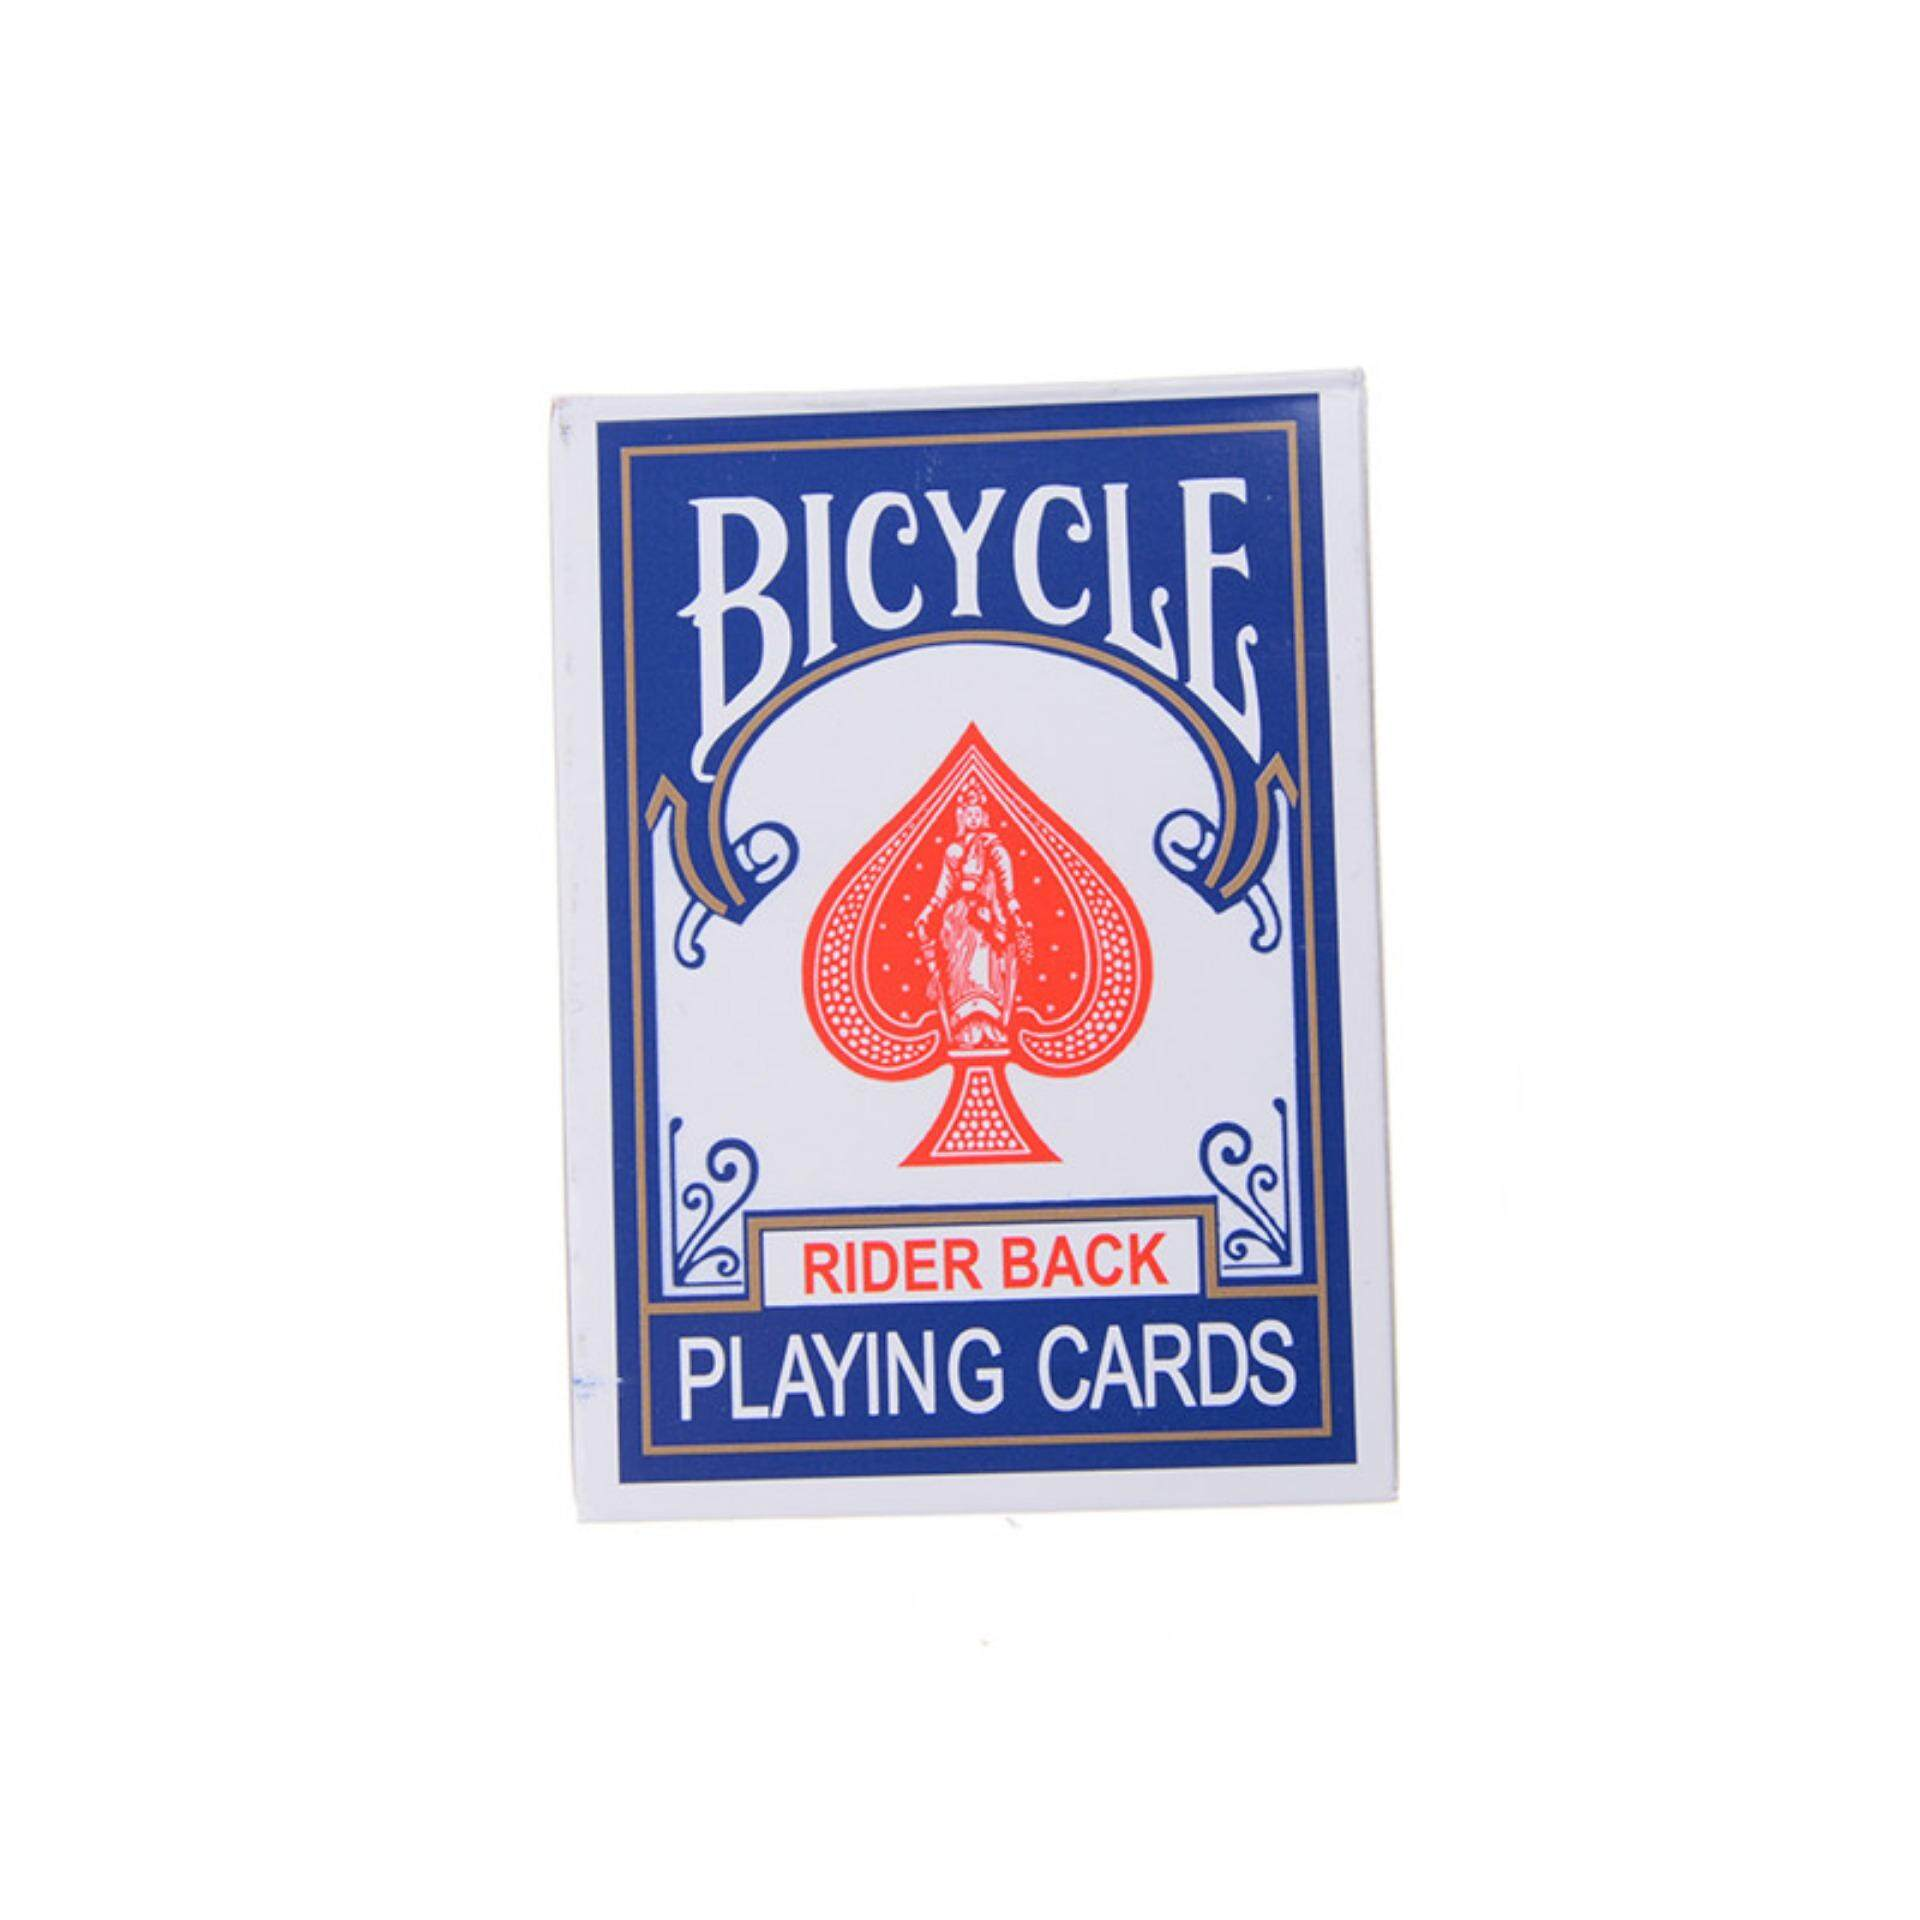 Sofa Infantil Toys R Us Graceful Bicycle Playing Cards Poker Rider Back Standard Decks Magic Toys Blue